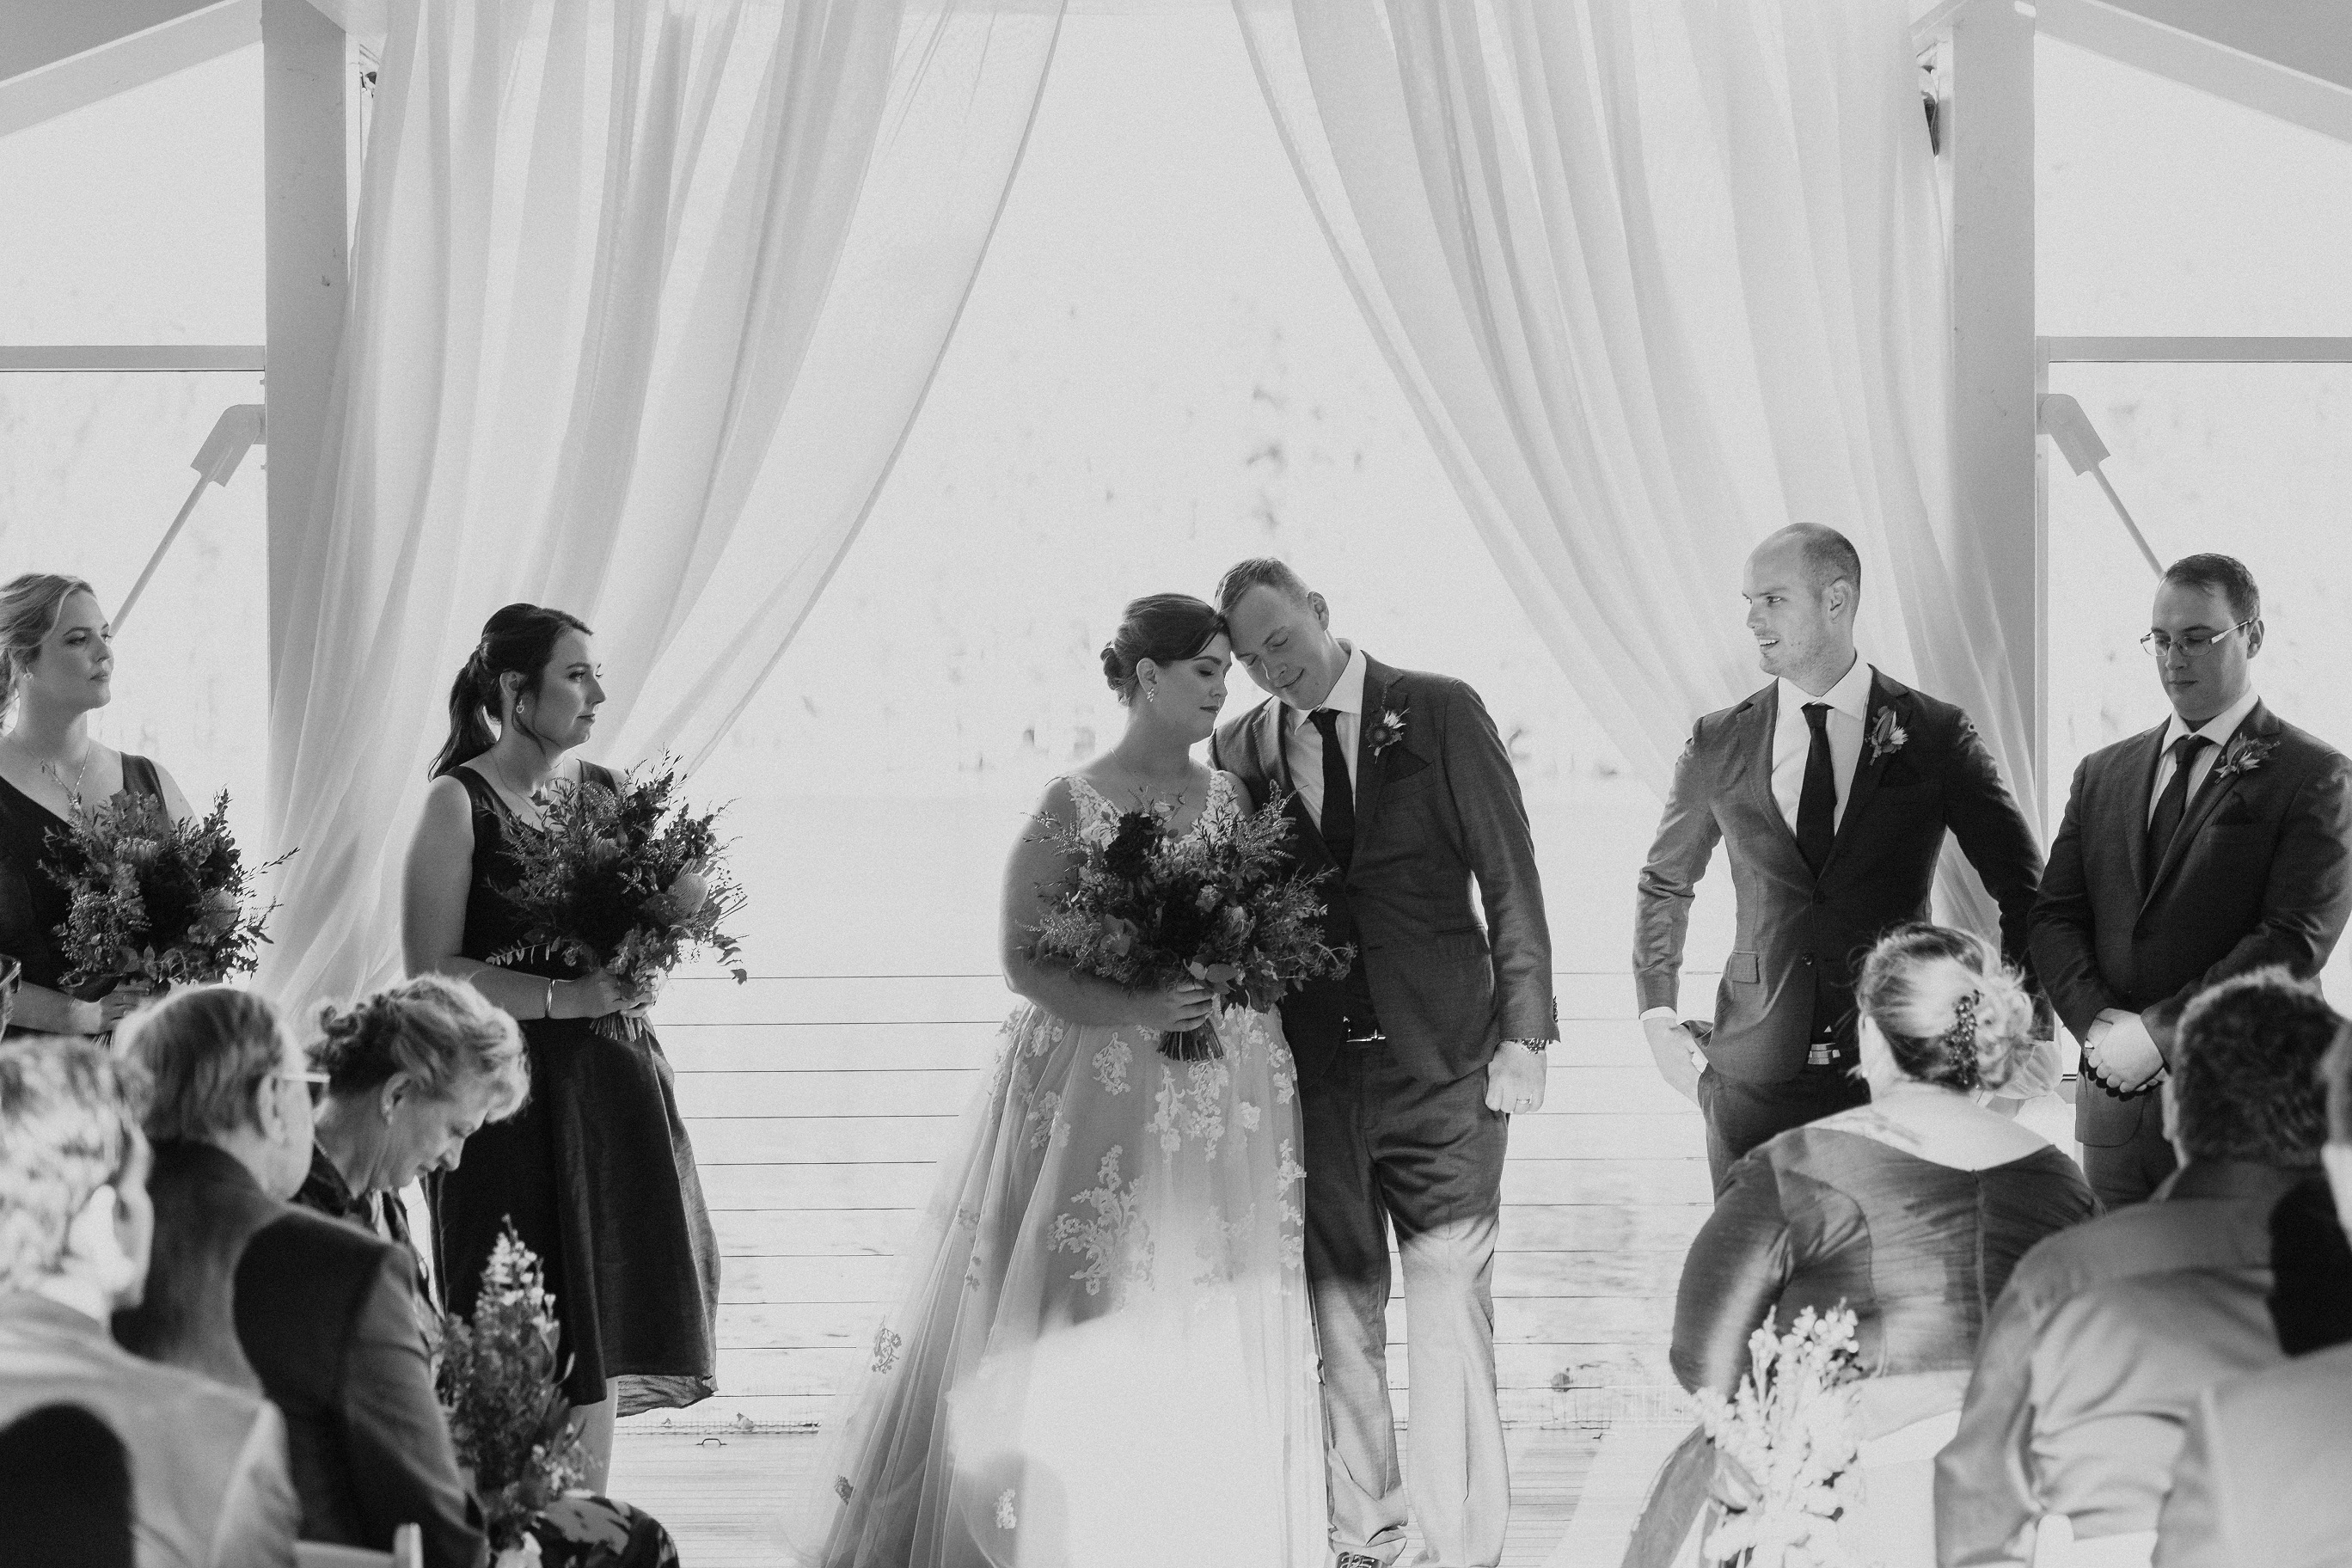 Amy & Alex sharing an intimate moment during their ceremony